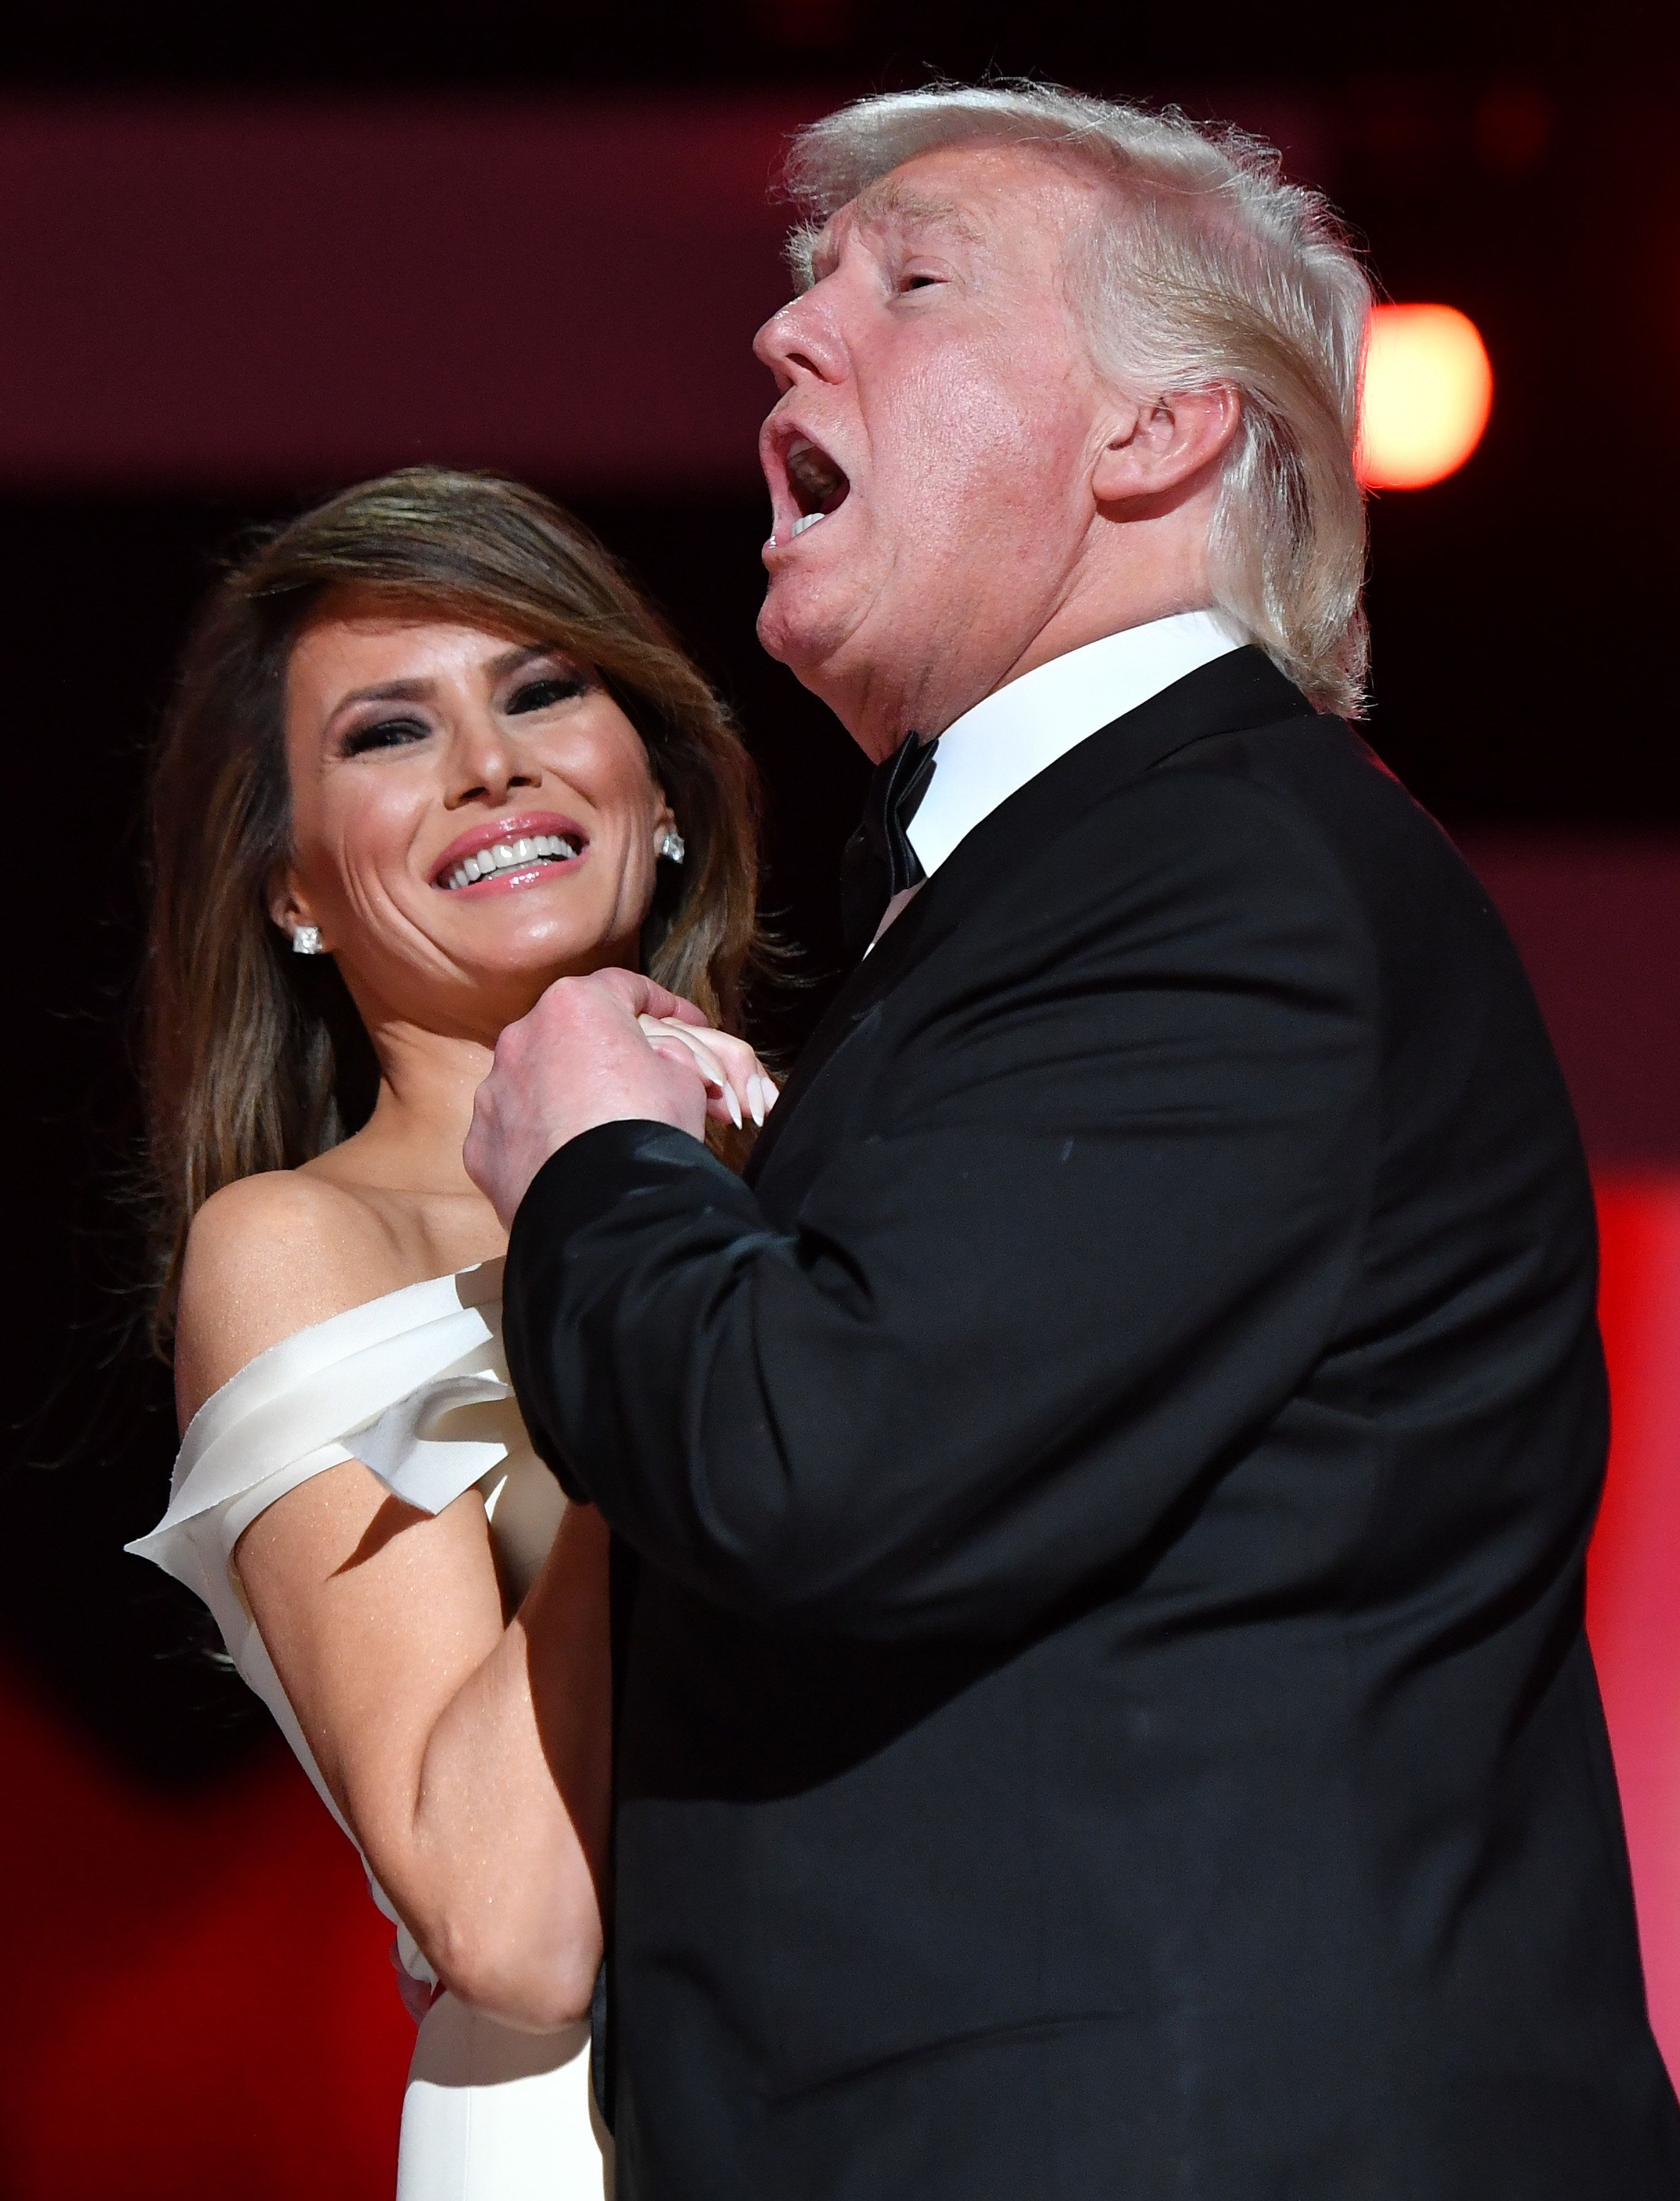 WASHINGTON, DC - JANUARY 20: President Donald Trump singing along to 'My Way' dances with first lady Melania Trump while attending the Freedom Inaugural Ball at the Walter E. Washington Convention Center on January 20, 2017 in Washington, D.C.  Trump will attend three inaugural balls.   (Photo by Kevin Dietsch - Pool/Getty Images)